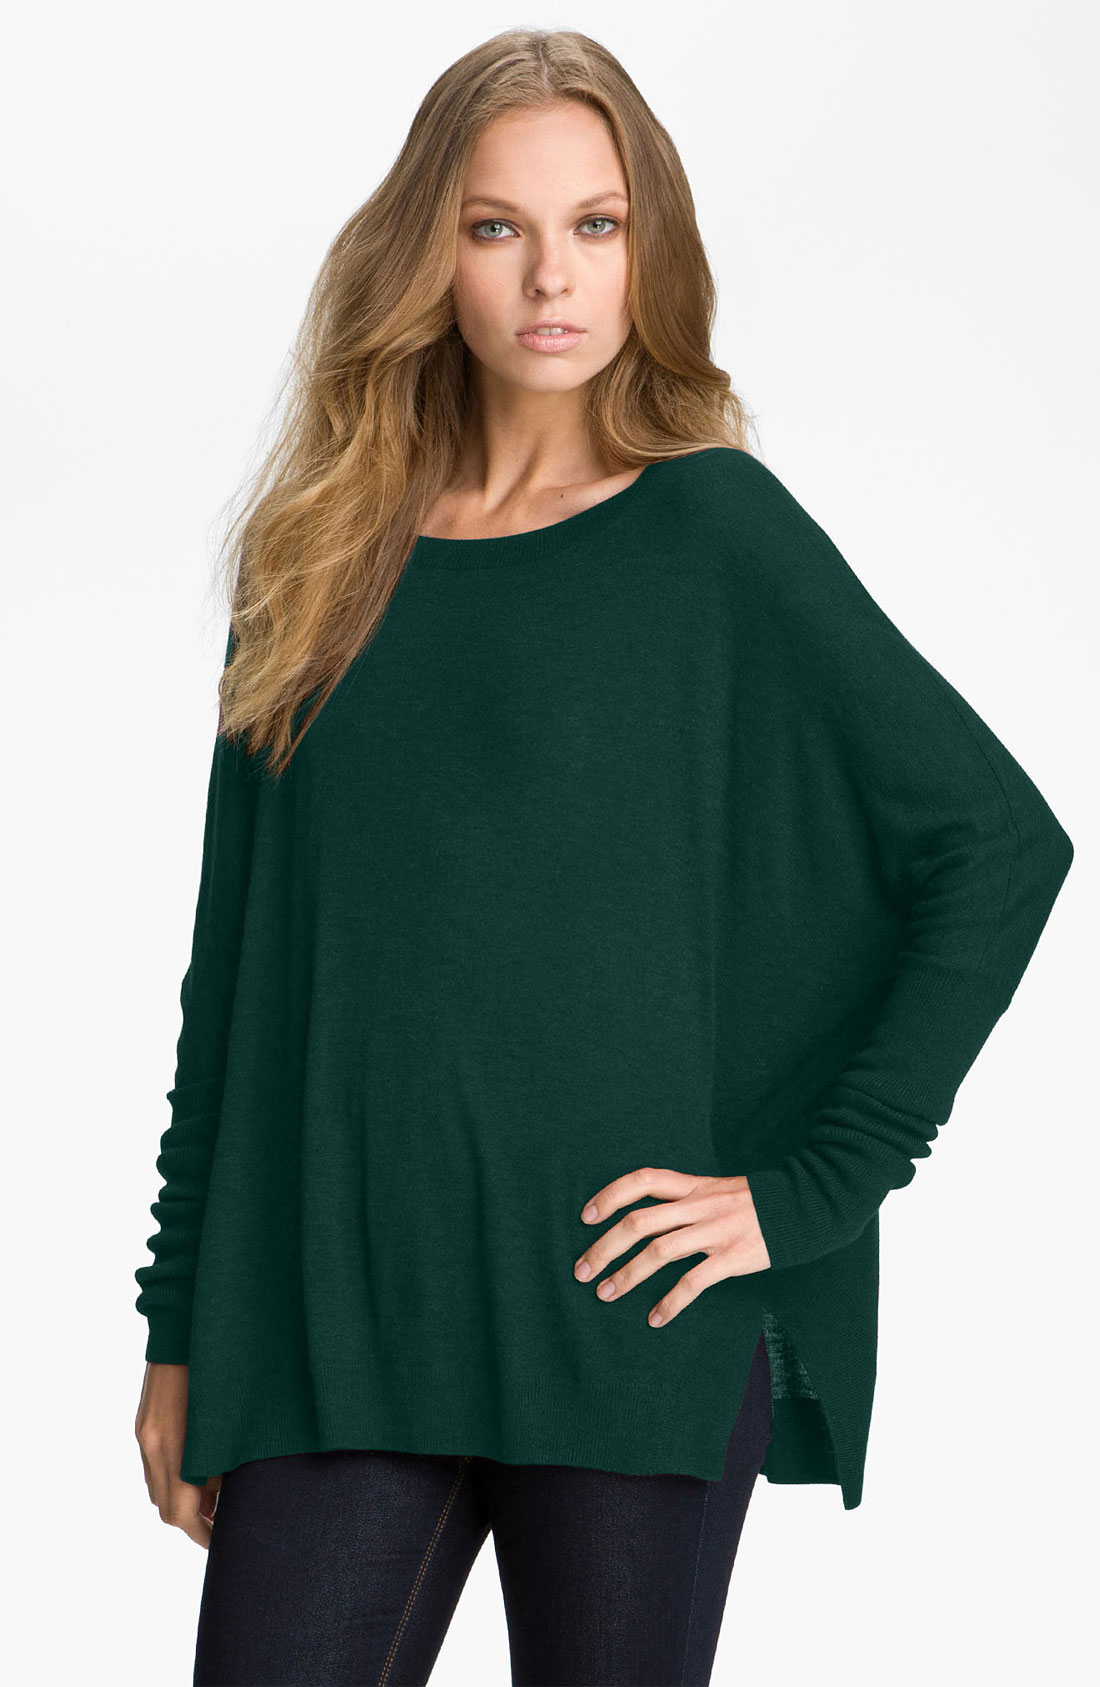 Plus Size Oversized Sweaters